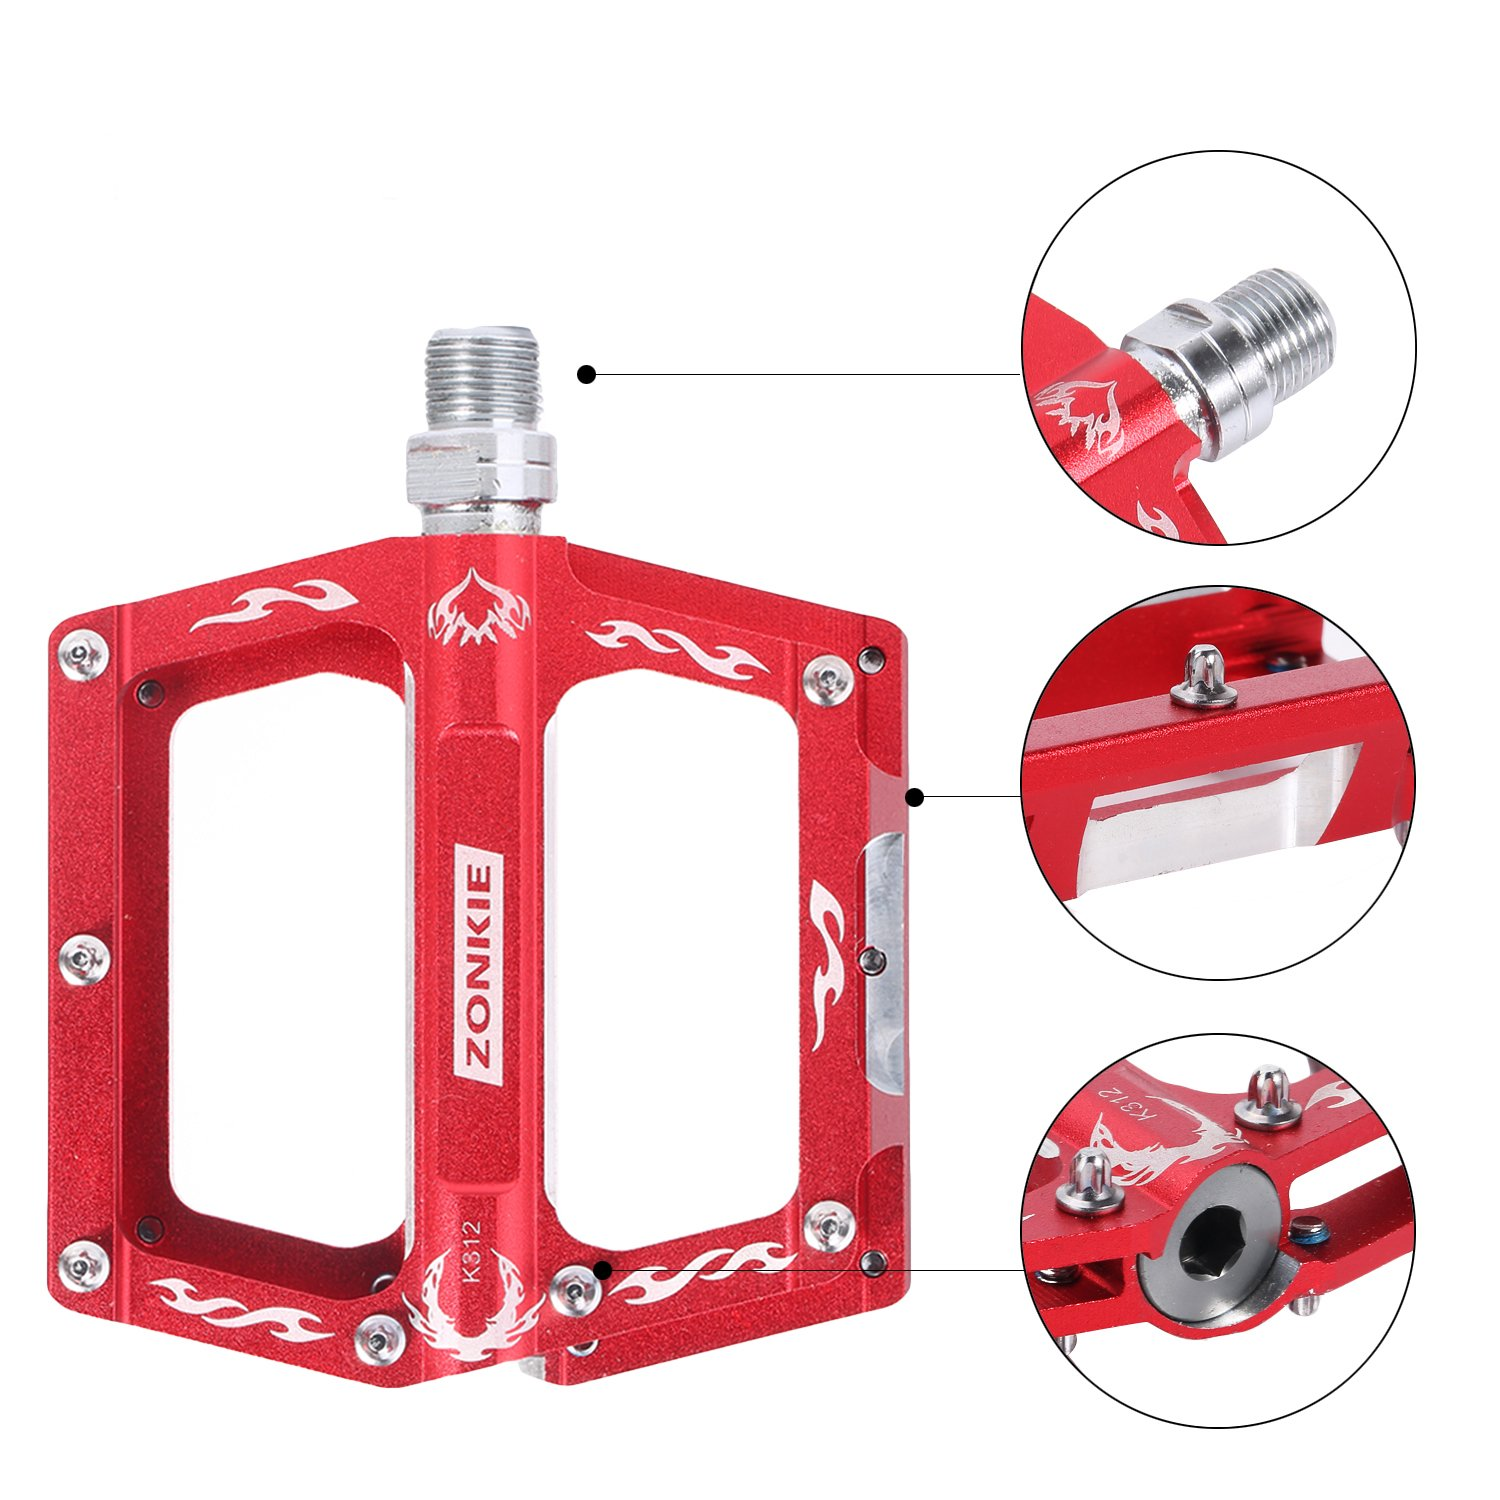 ZONKIE Bike Pedals,Mountain Bicycles Pedals Flat Aluminum Alloy Platform Sealed Bearing Axle